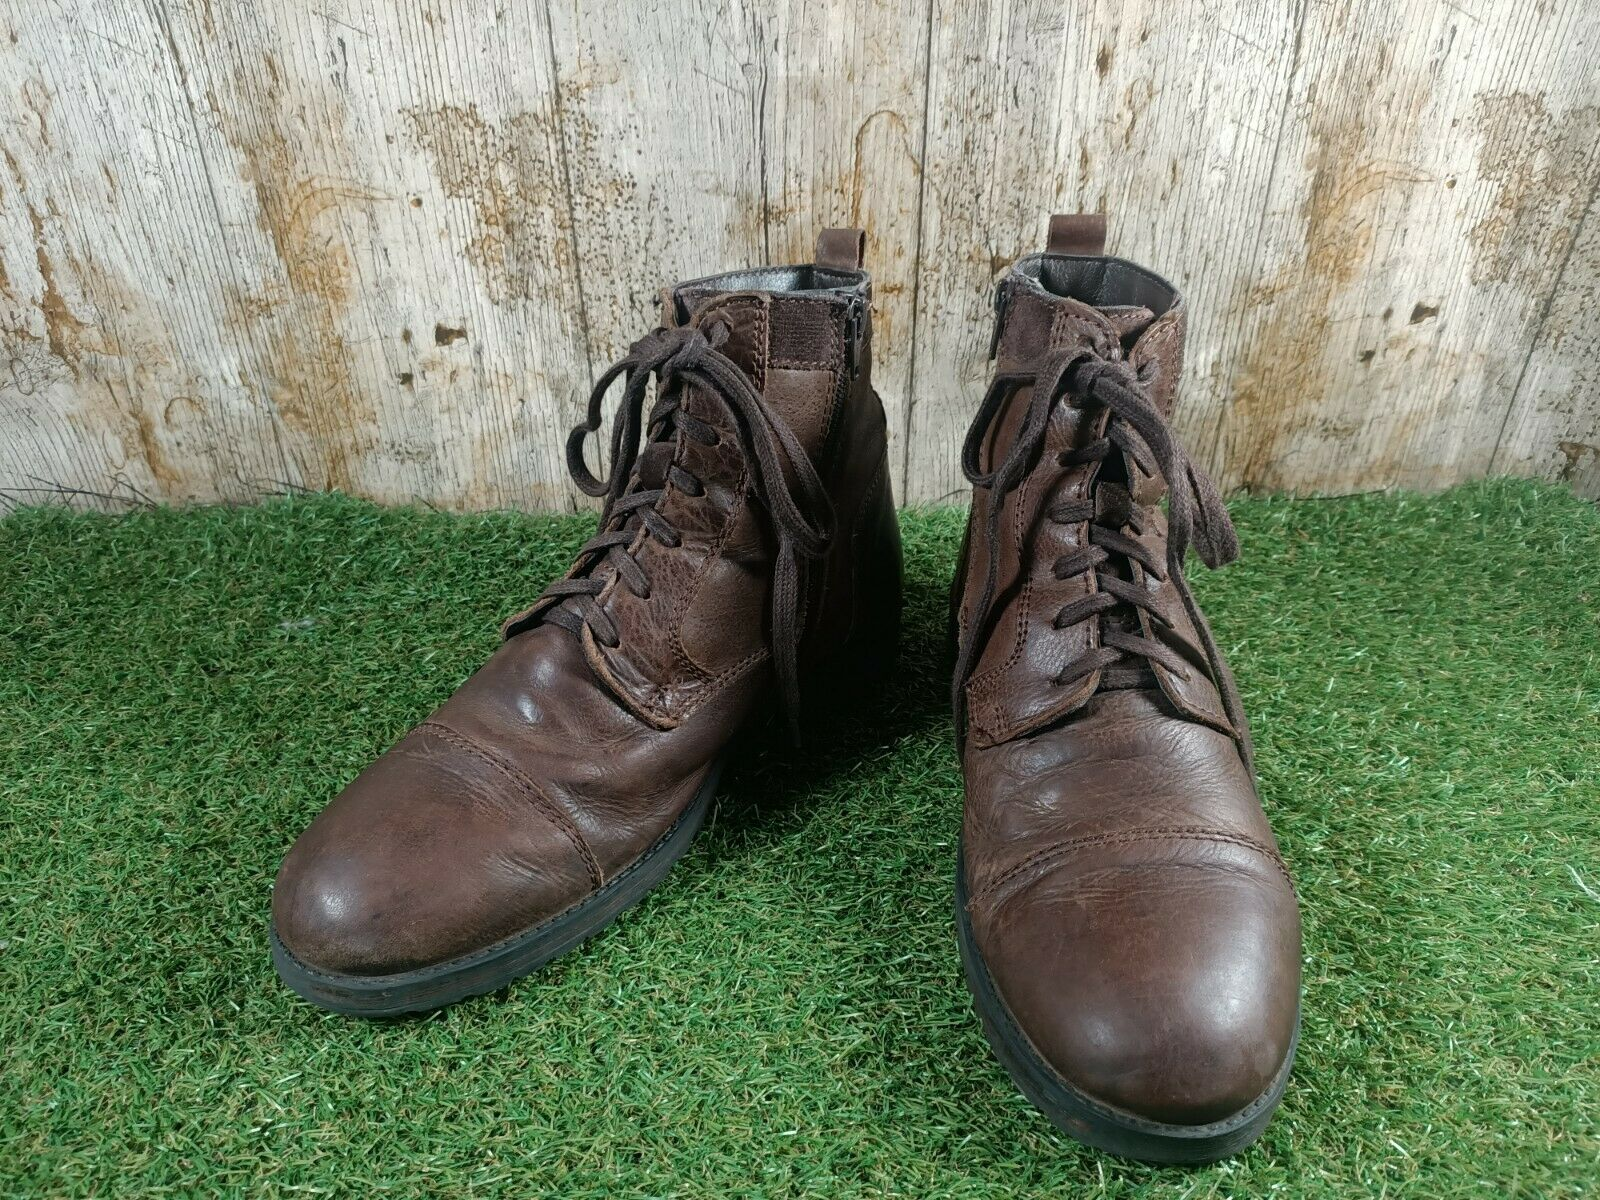 TOPMAN BROWN LEATHER BOOTS SIZE 7 UK 41 EUR